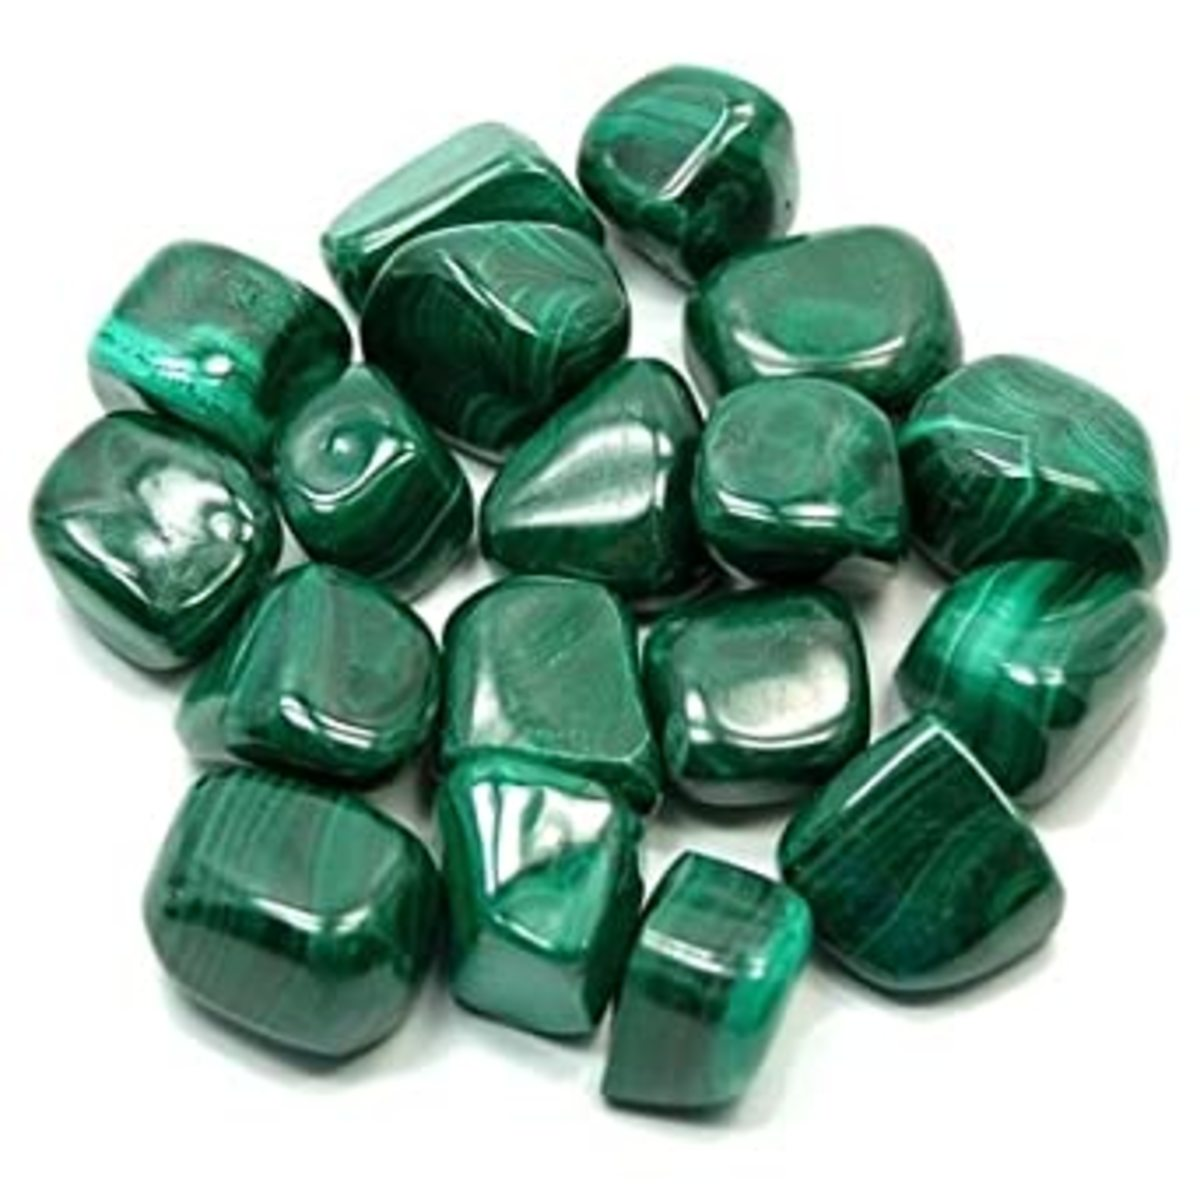 Because of the power of this stone and high vibrational energies it can emit, it is recommended only to use this stone in the presence of a professional crystal healer.